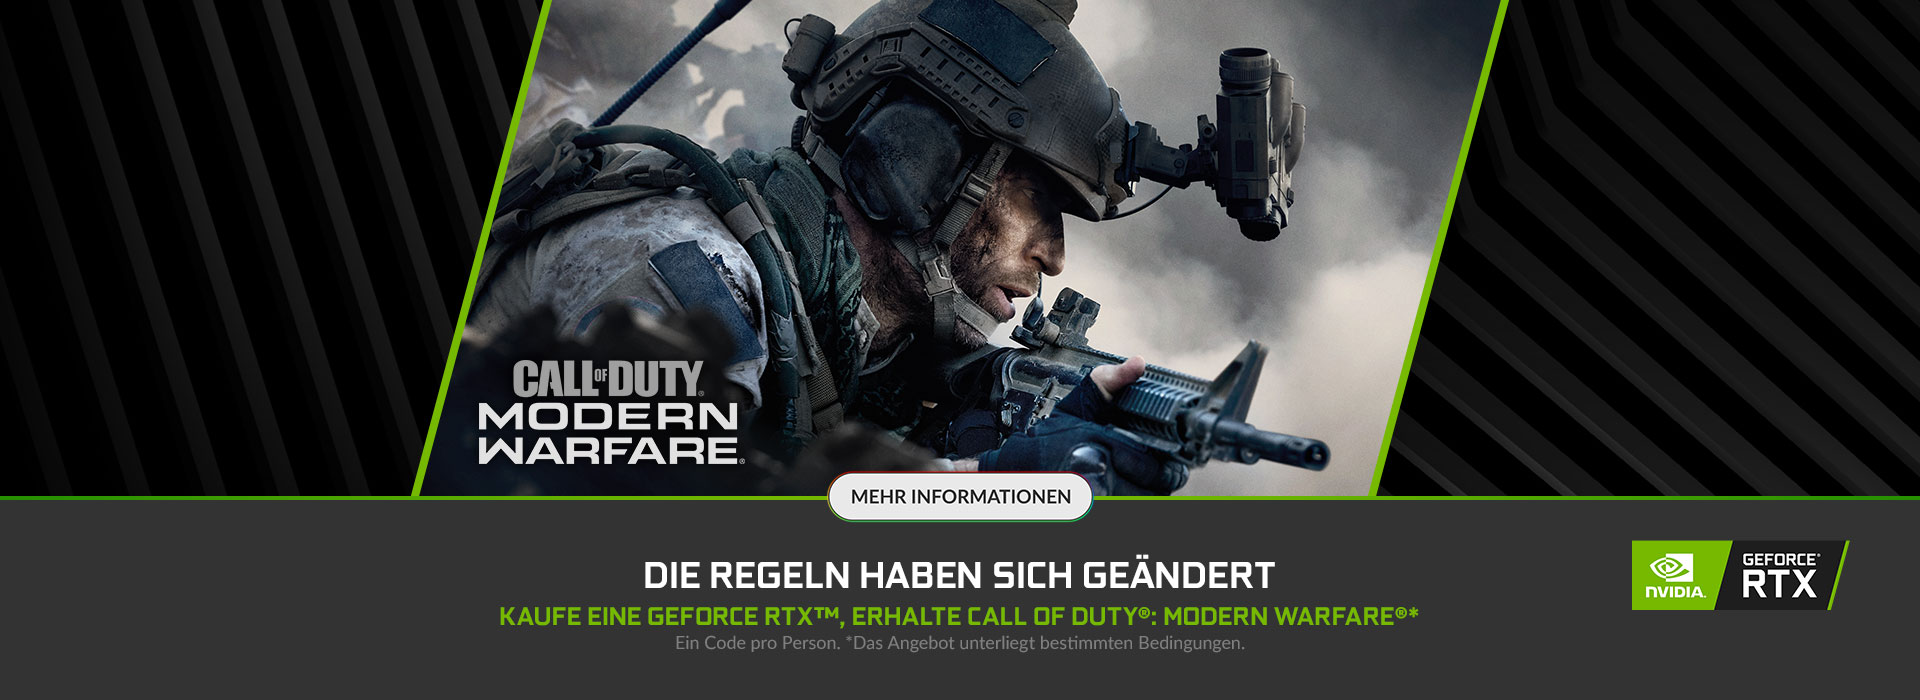 NVIDIA GeForce RTX Call of Duty: Modern Warfare Bundle